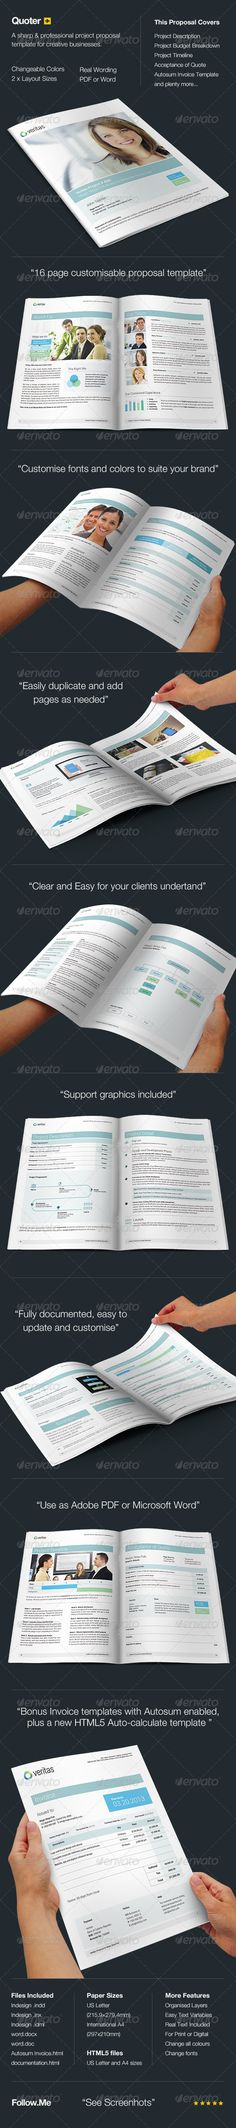 Annual Report Proposal Template Proposal templates